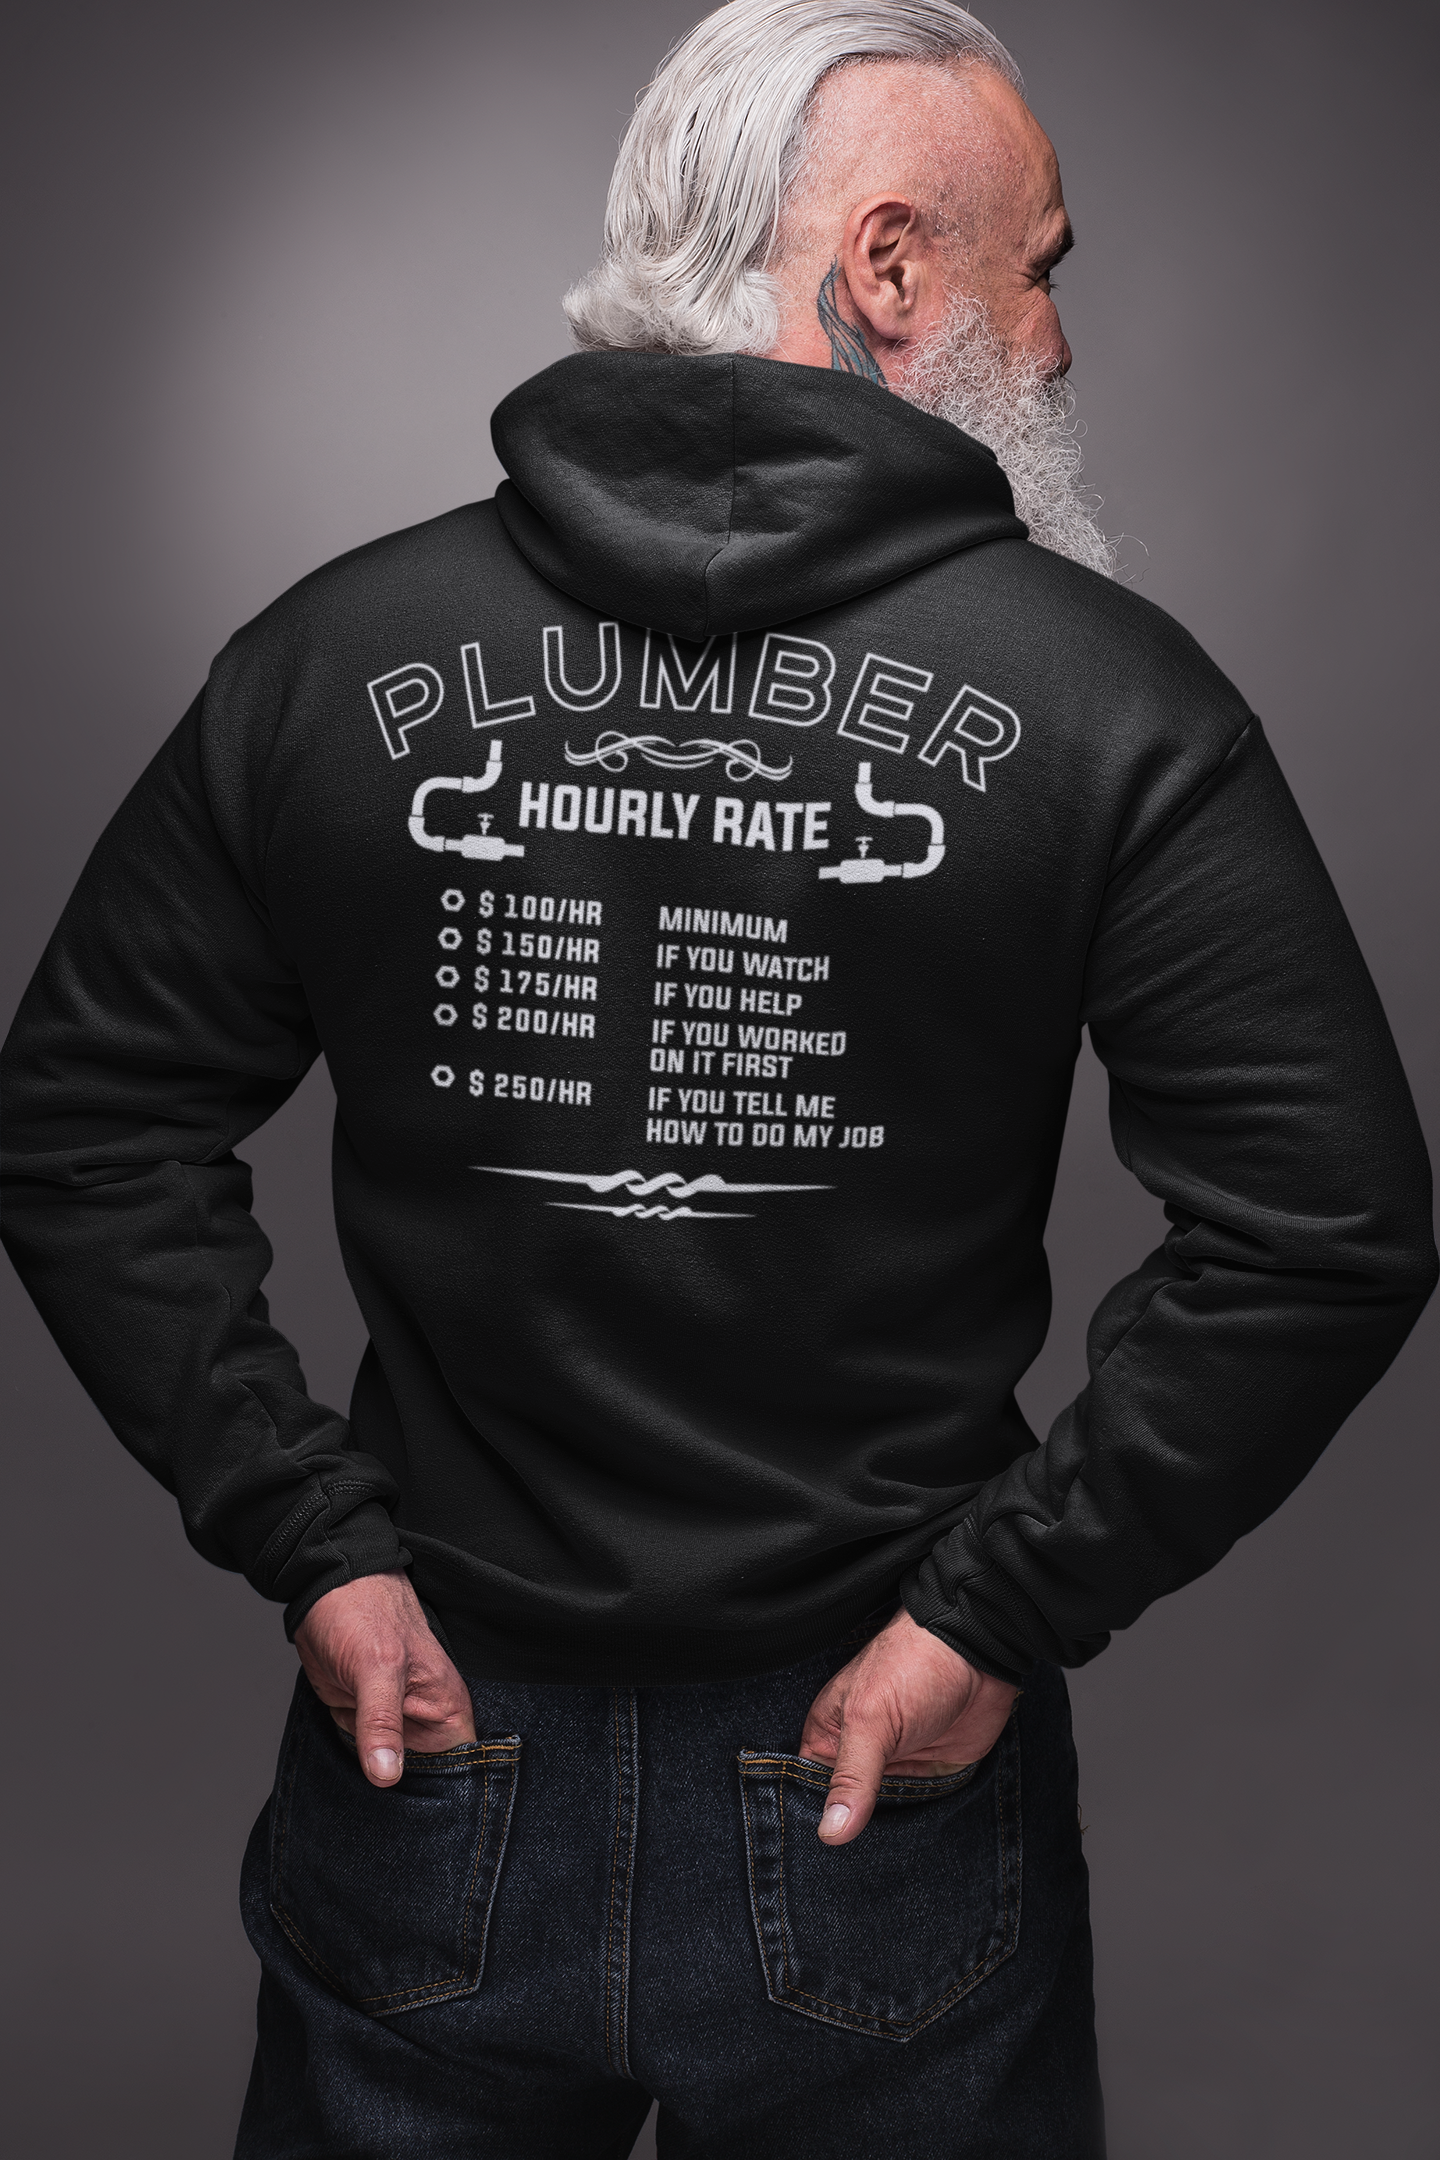 hoodie-mockup-in-back-view-featuring-a-senior-muscular-man-in-photo-studio-23368.png